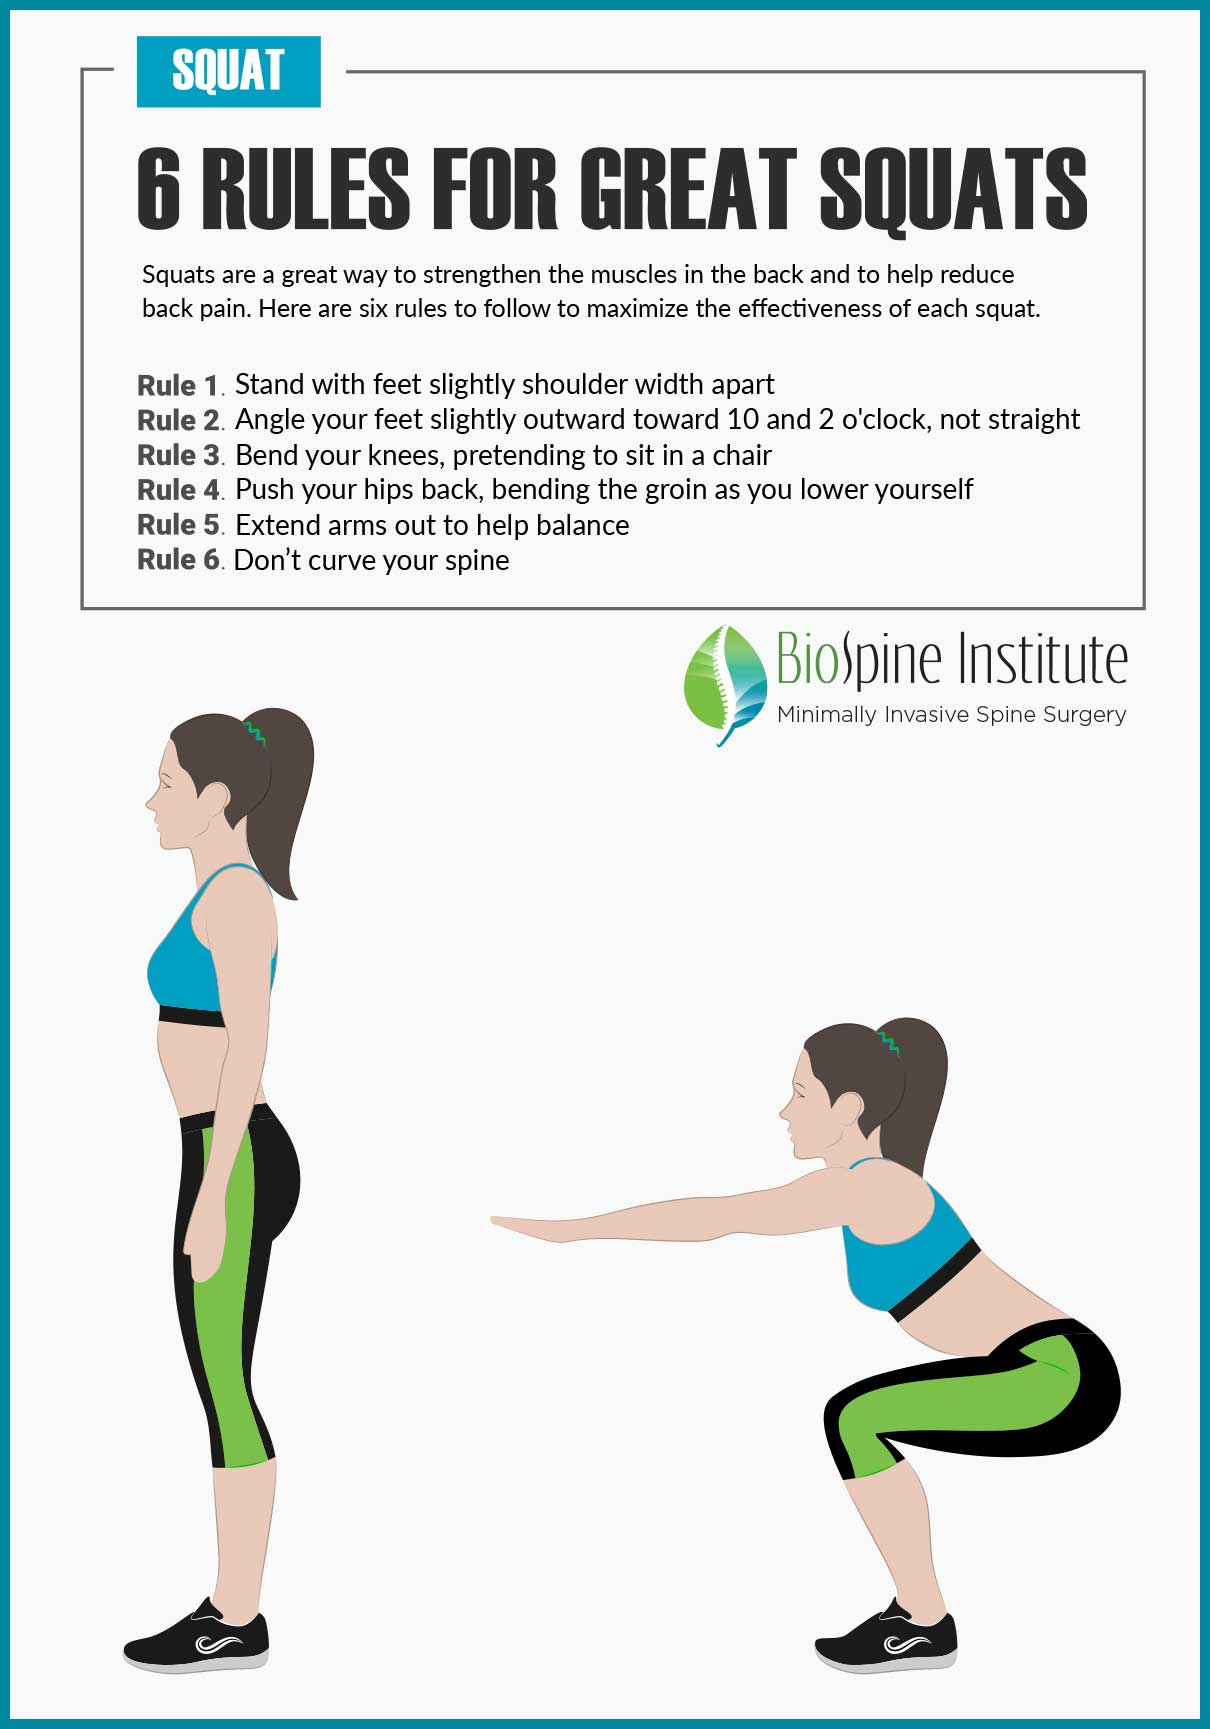 Relieve Back Pain with Two Types of Squats